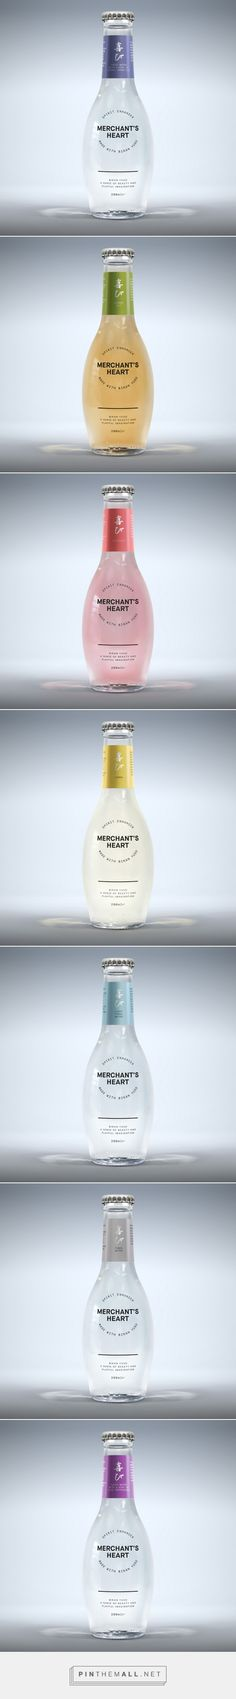 Merchant's Heart Tonic Water Packaging by Antonio Milo | Fivestar Branding Agency – Design and Branding Agency & Curated Inspiration Gallery #beveragepackage #packaging #packagingdesign #packagedesign #design #designinspiration